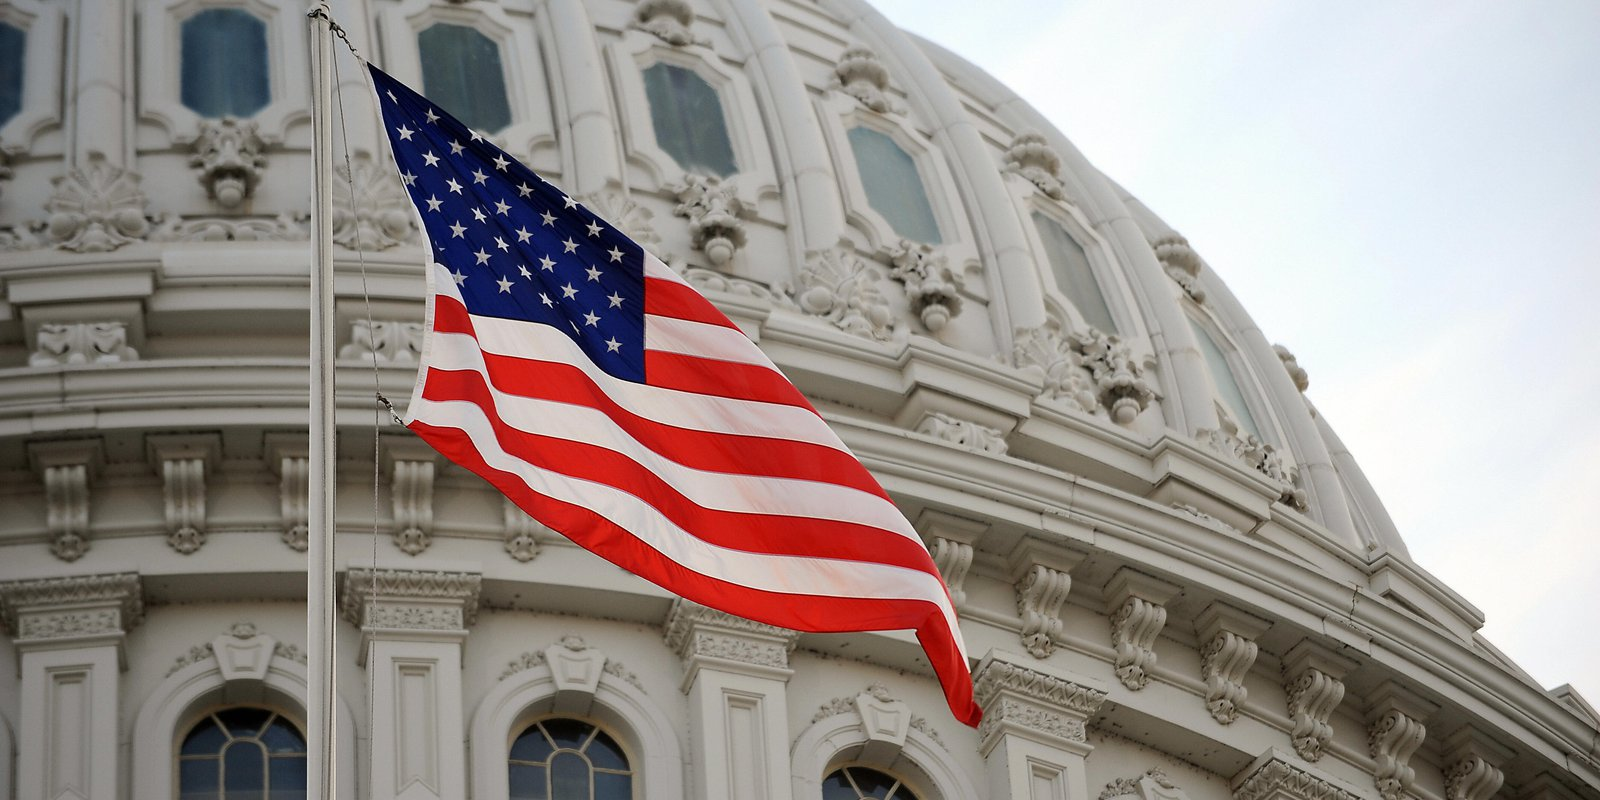 The US flag flies at the US Capitol in Washington, DC, January 20, 2009. Photo credit: STAN HONDA/AFP via Getty Images.